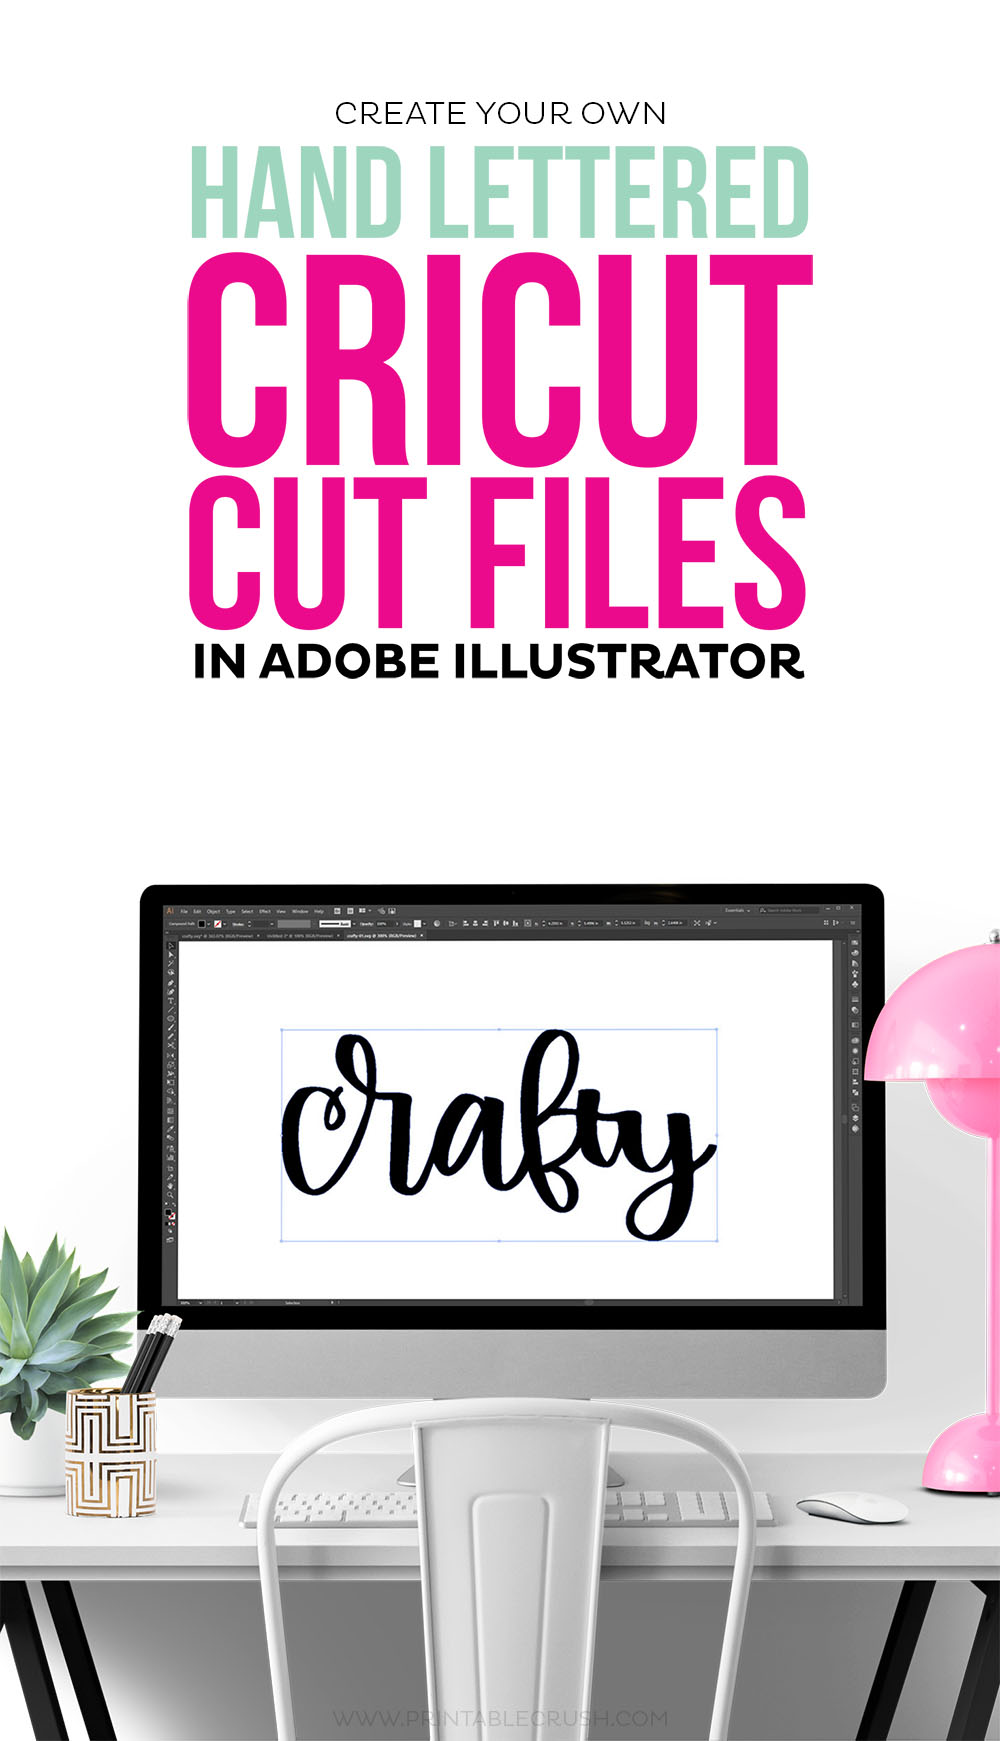 Learn to create Hand Lettered Cricut Files in Adobe Illustrator. I'll go through creating SVG files and PNG files!